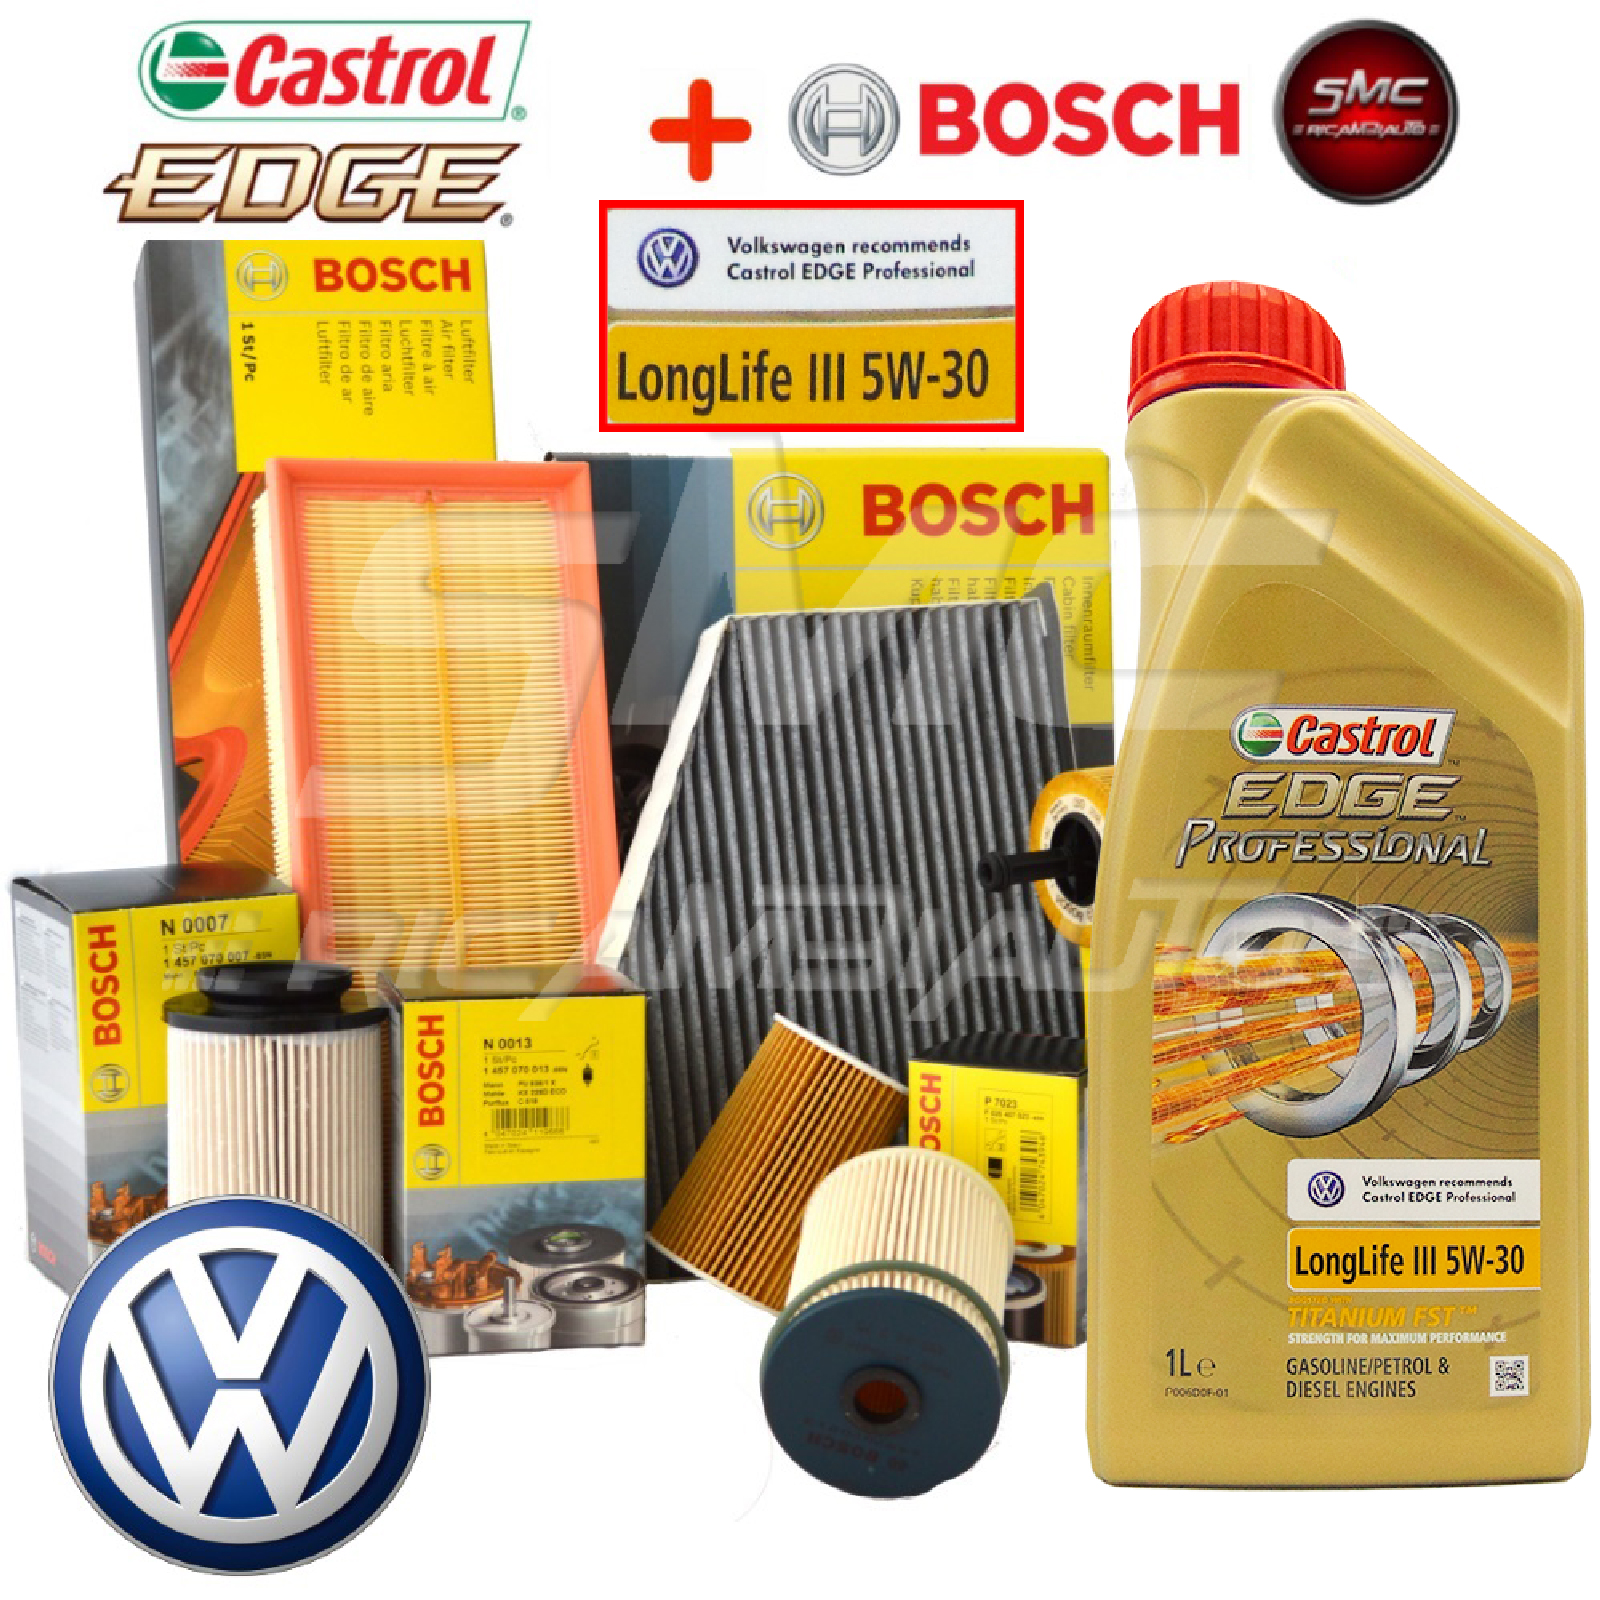 inspektionskit filterset bosch l castrol ll03 vw golf 7. Black Bedroom Furniture Sets. Home Design Ideas